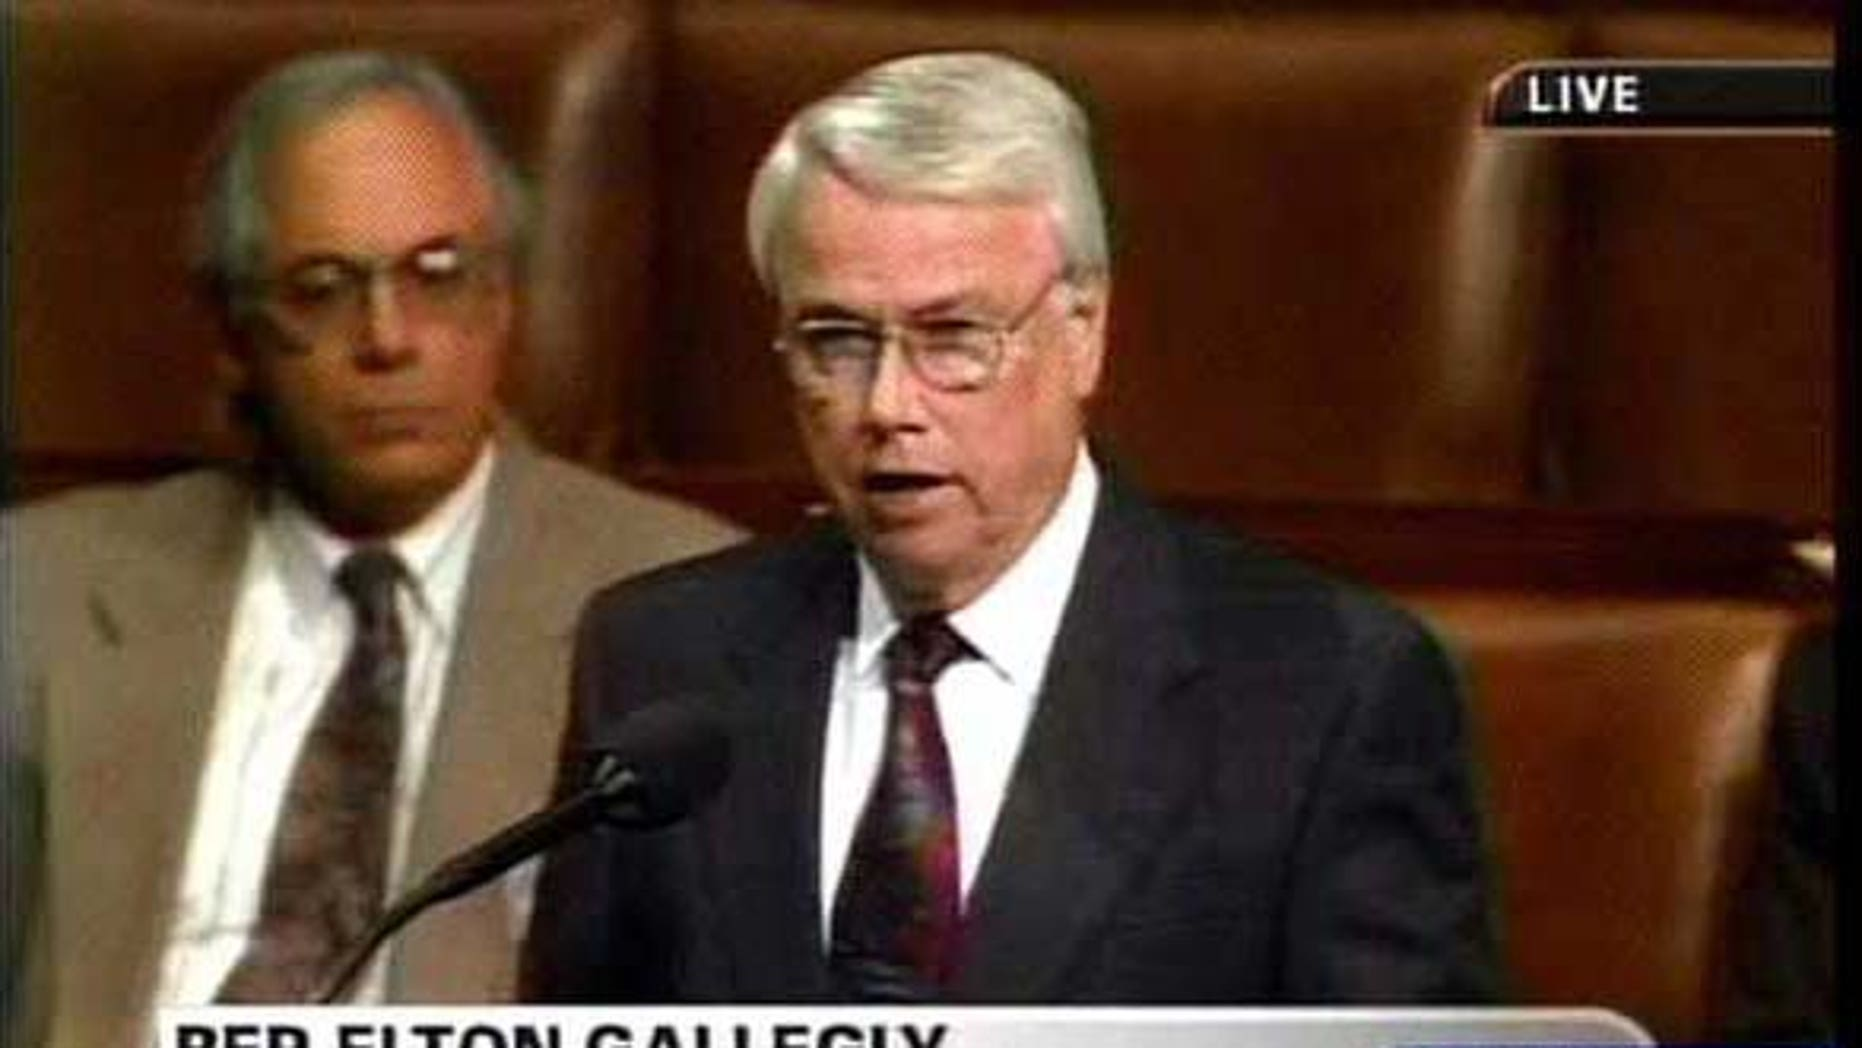 """NA.Excerpts.3.  Congressman Elton Gallegly (R-Simi Valley) gives his views on the House resolution today.  Congress debates the H.J. 114 Iraq Resolution.  Authorizes military force to defend the U.S. against """"the contin uing threat posed by Iraq."""""""